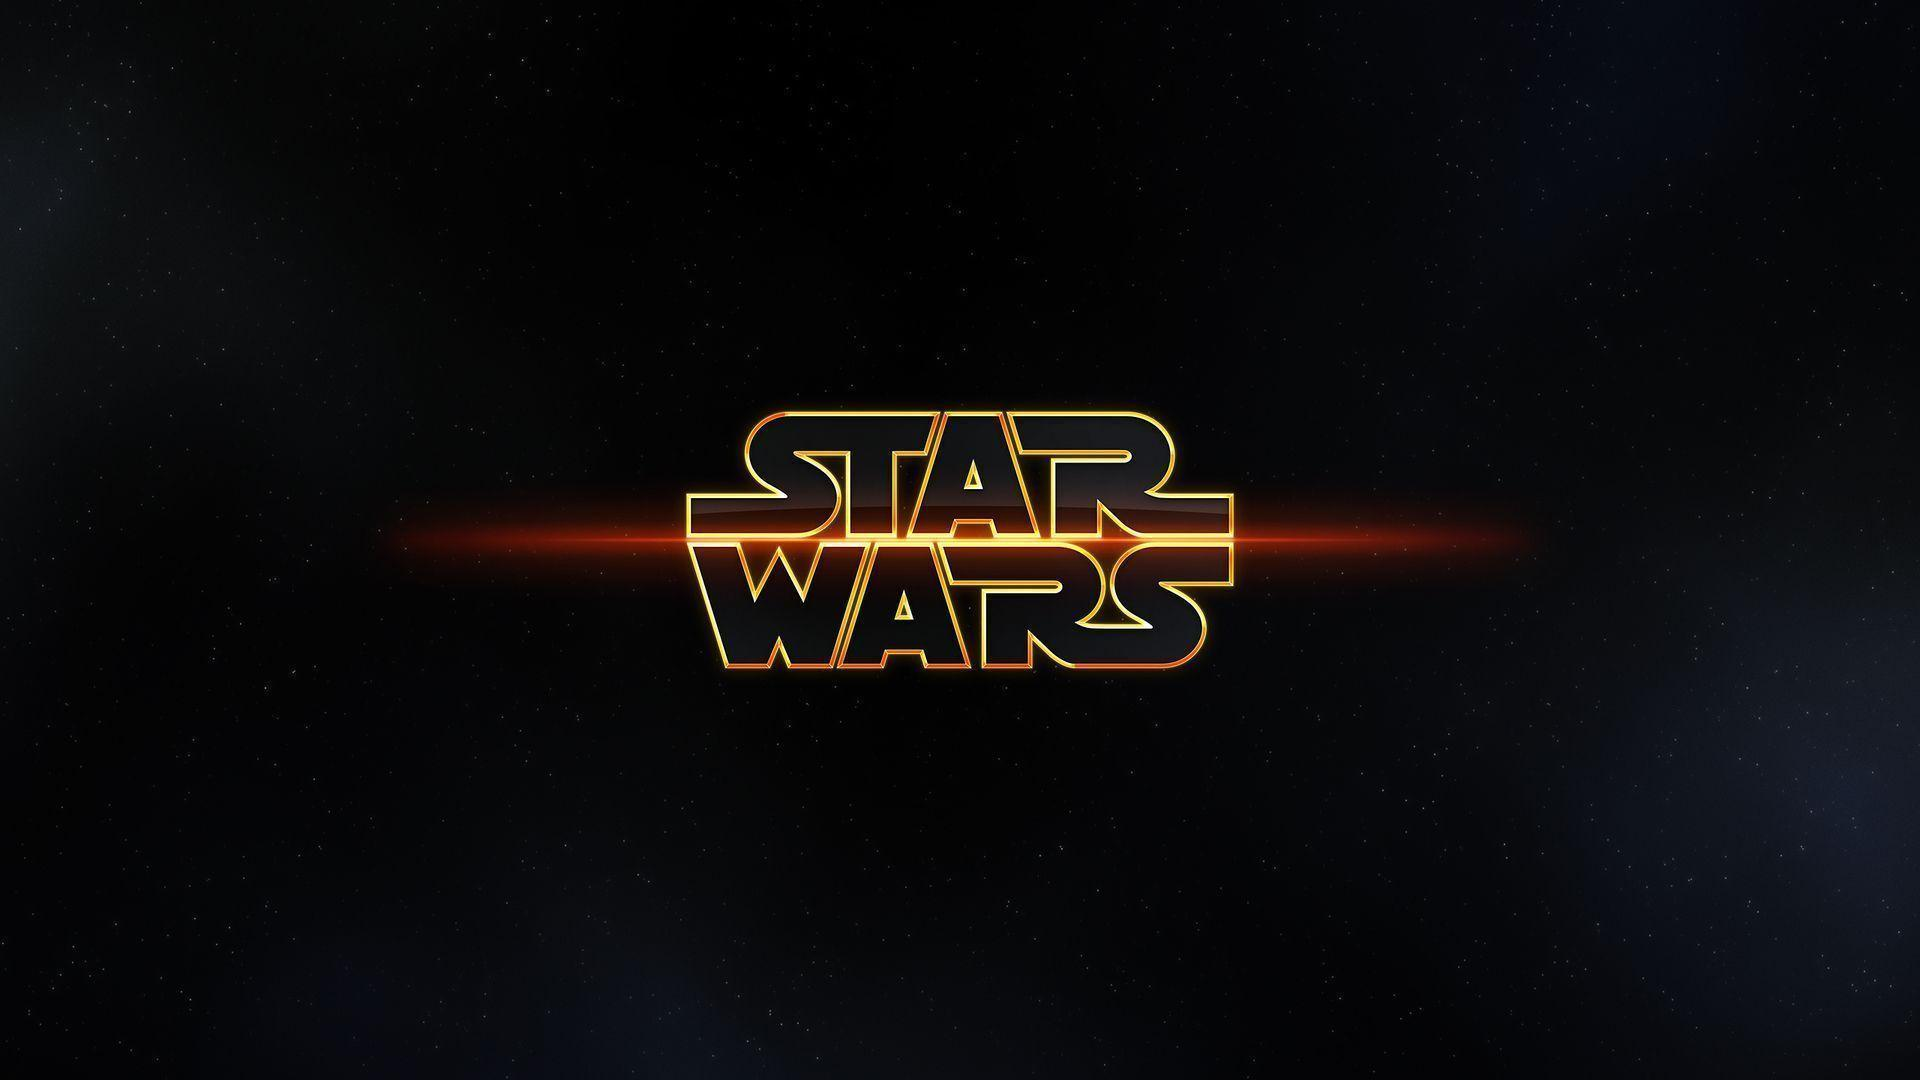 Wallpapers Star Wars Movie 1920x1080PX ~ Wallpaper Star Wars Movie ...